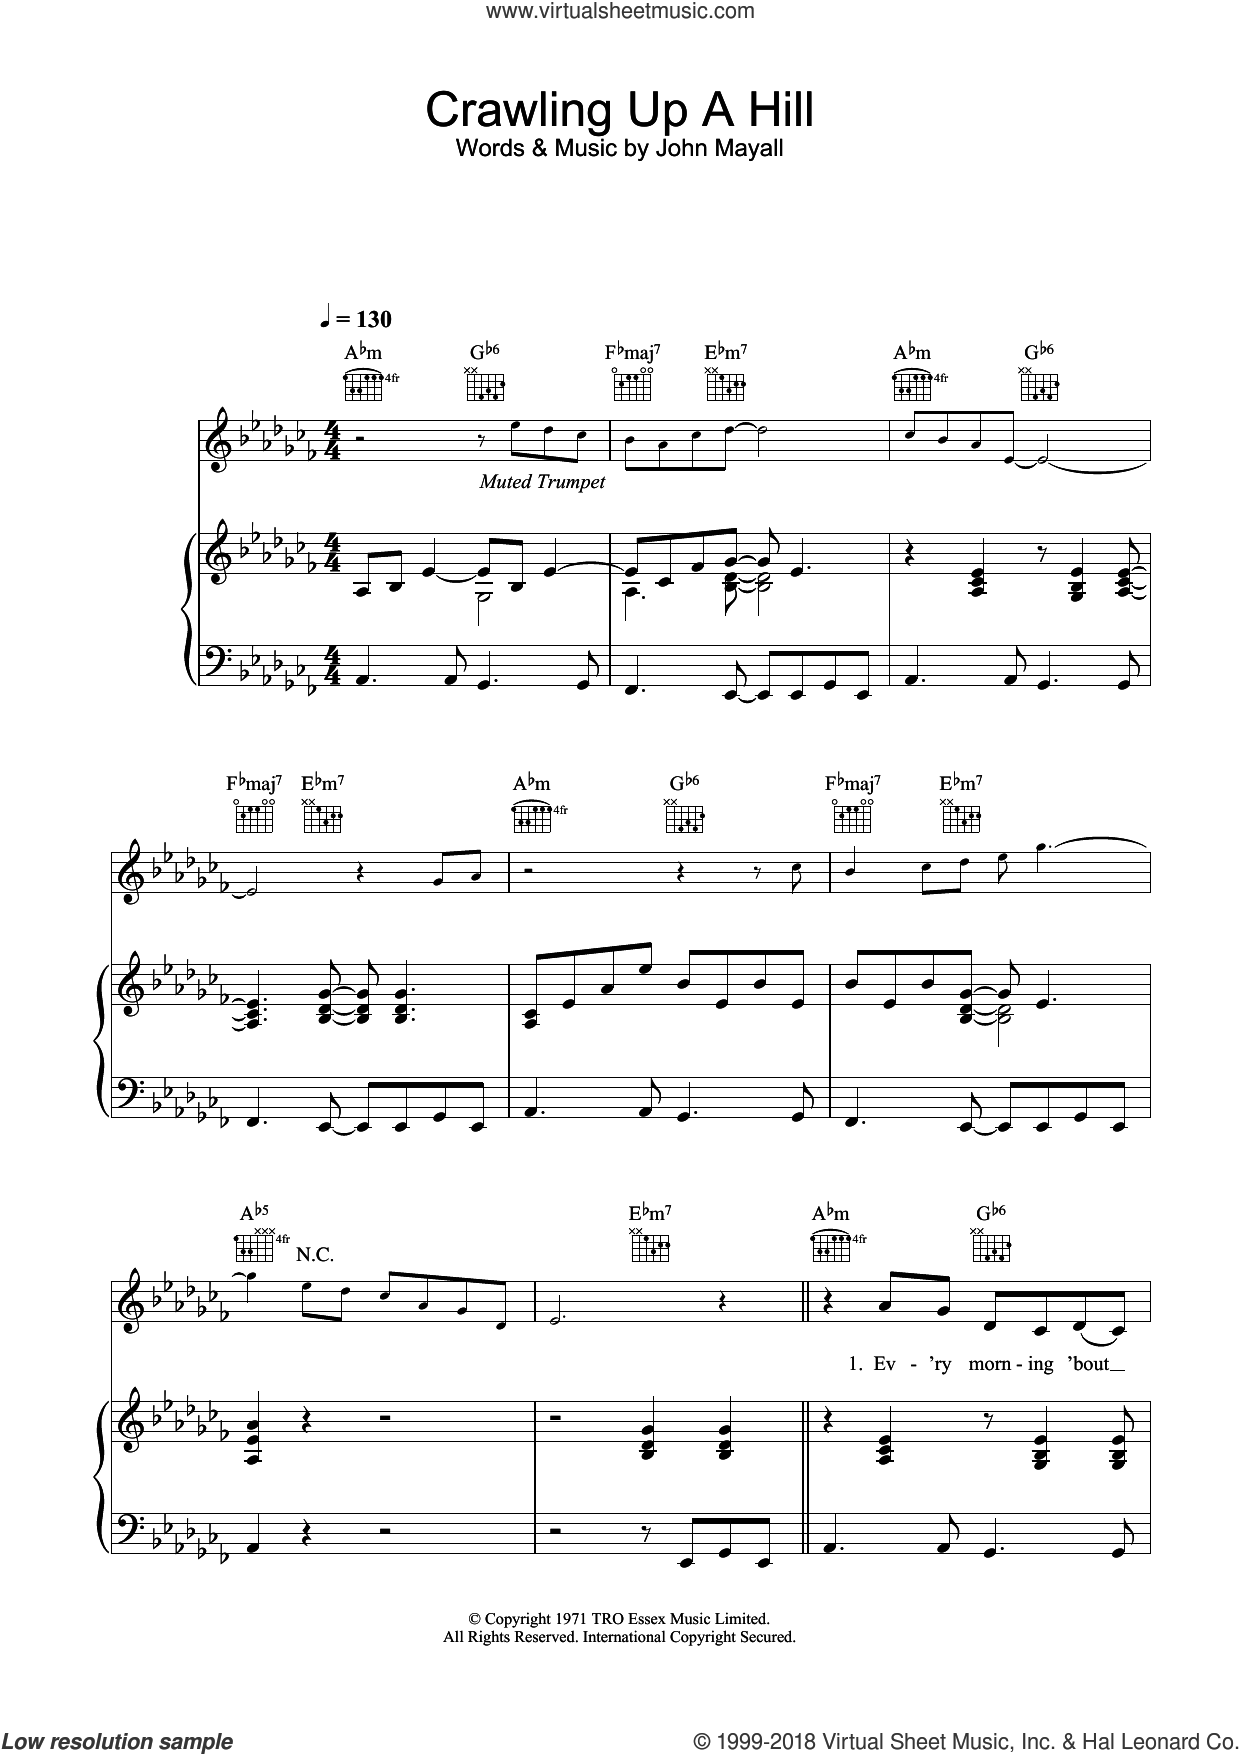 Crawling Up A Hill sheet music for voice, piano or guitar by Katie Melua and John Mayall, intermediate skill level